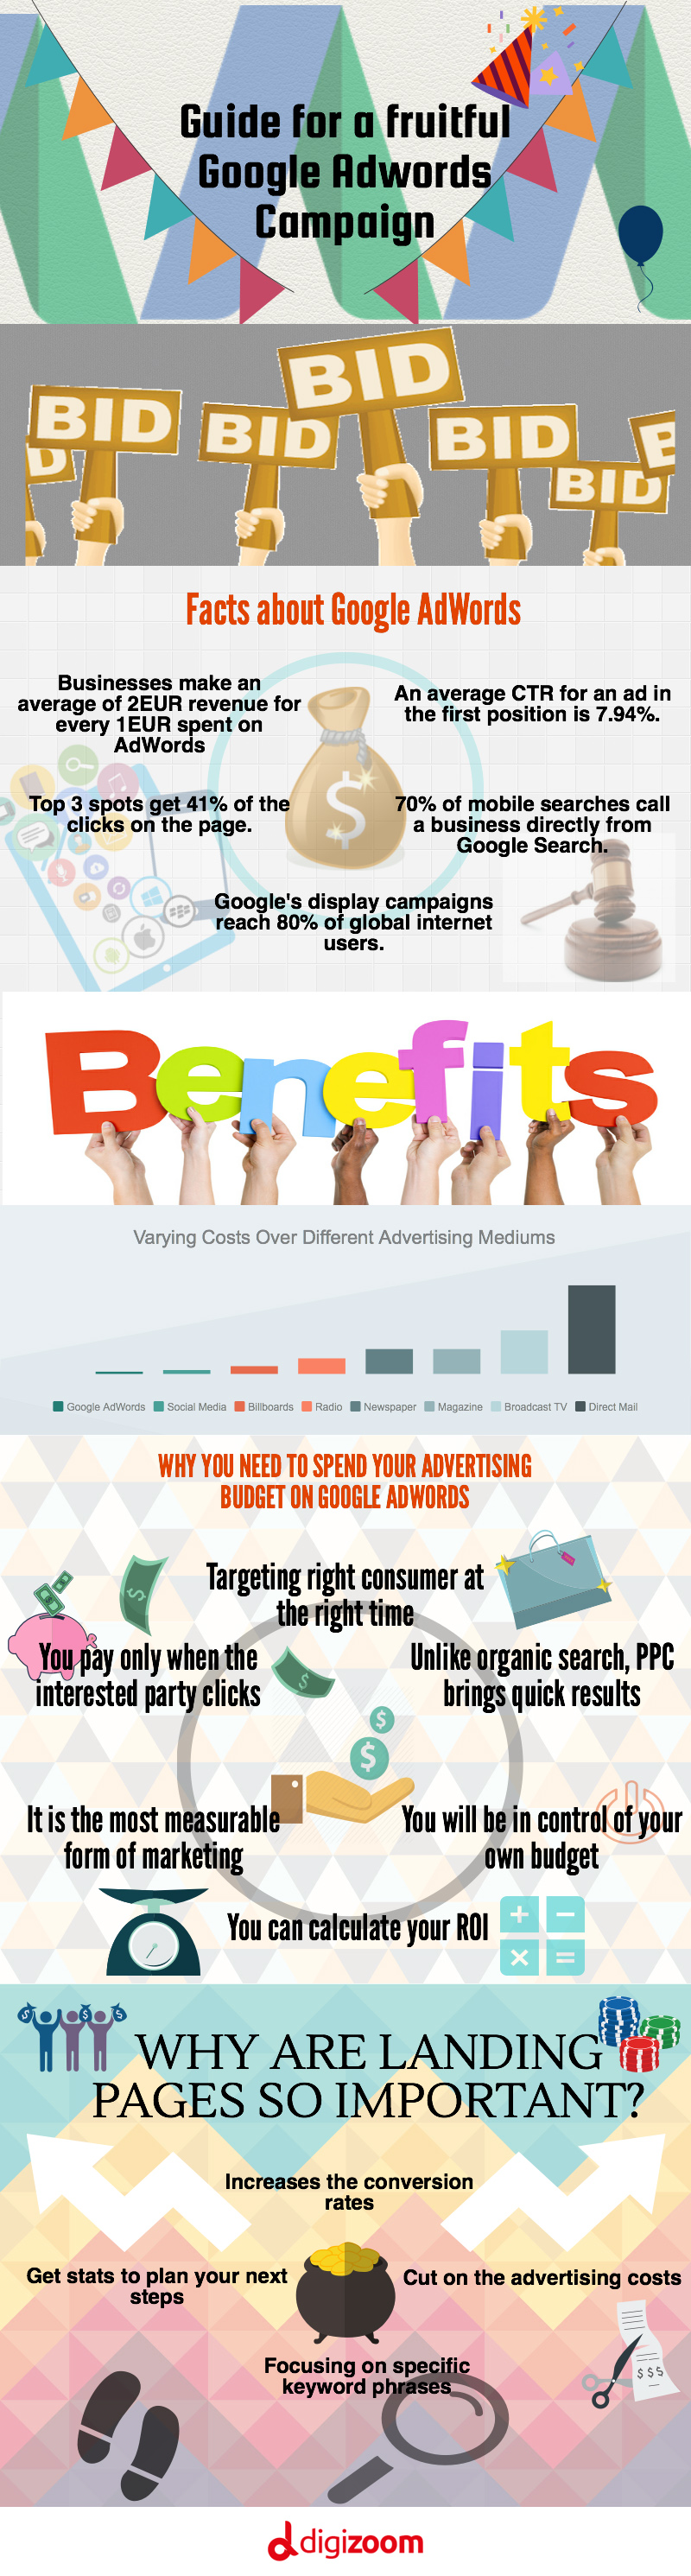 guide-adwords-campaign.jpg